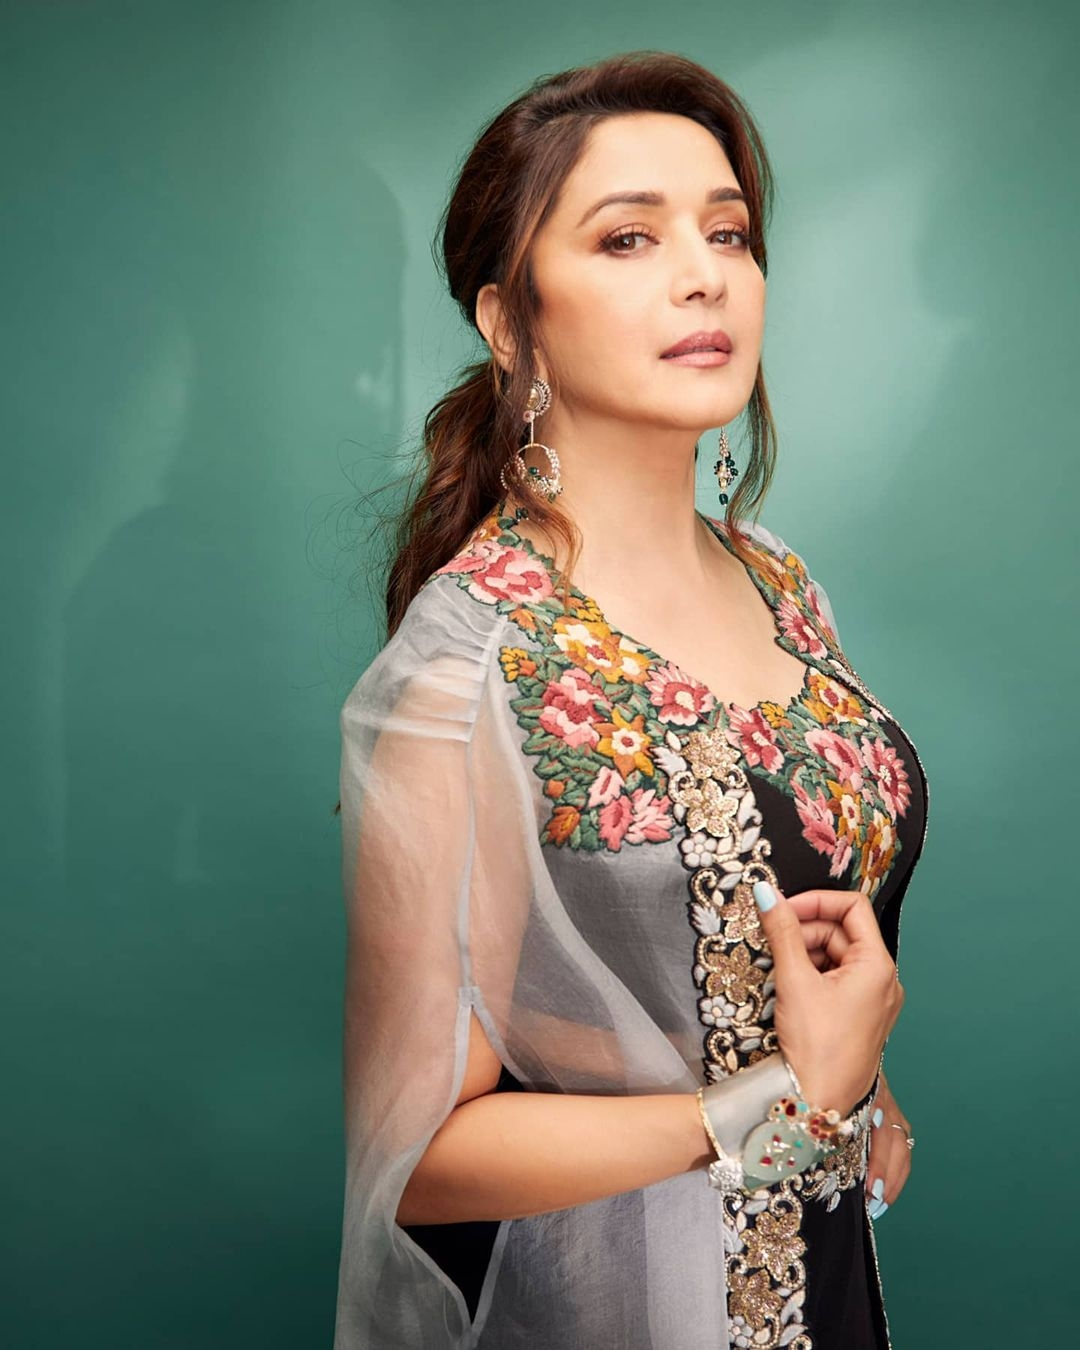 Madhuri Dixit: Heartbreaking to see pandemic taking over our lives yet again